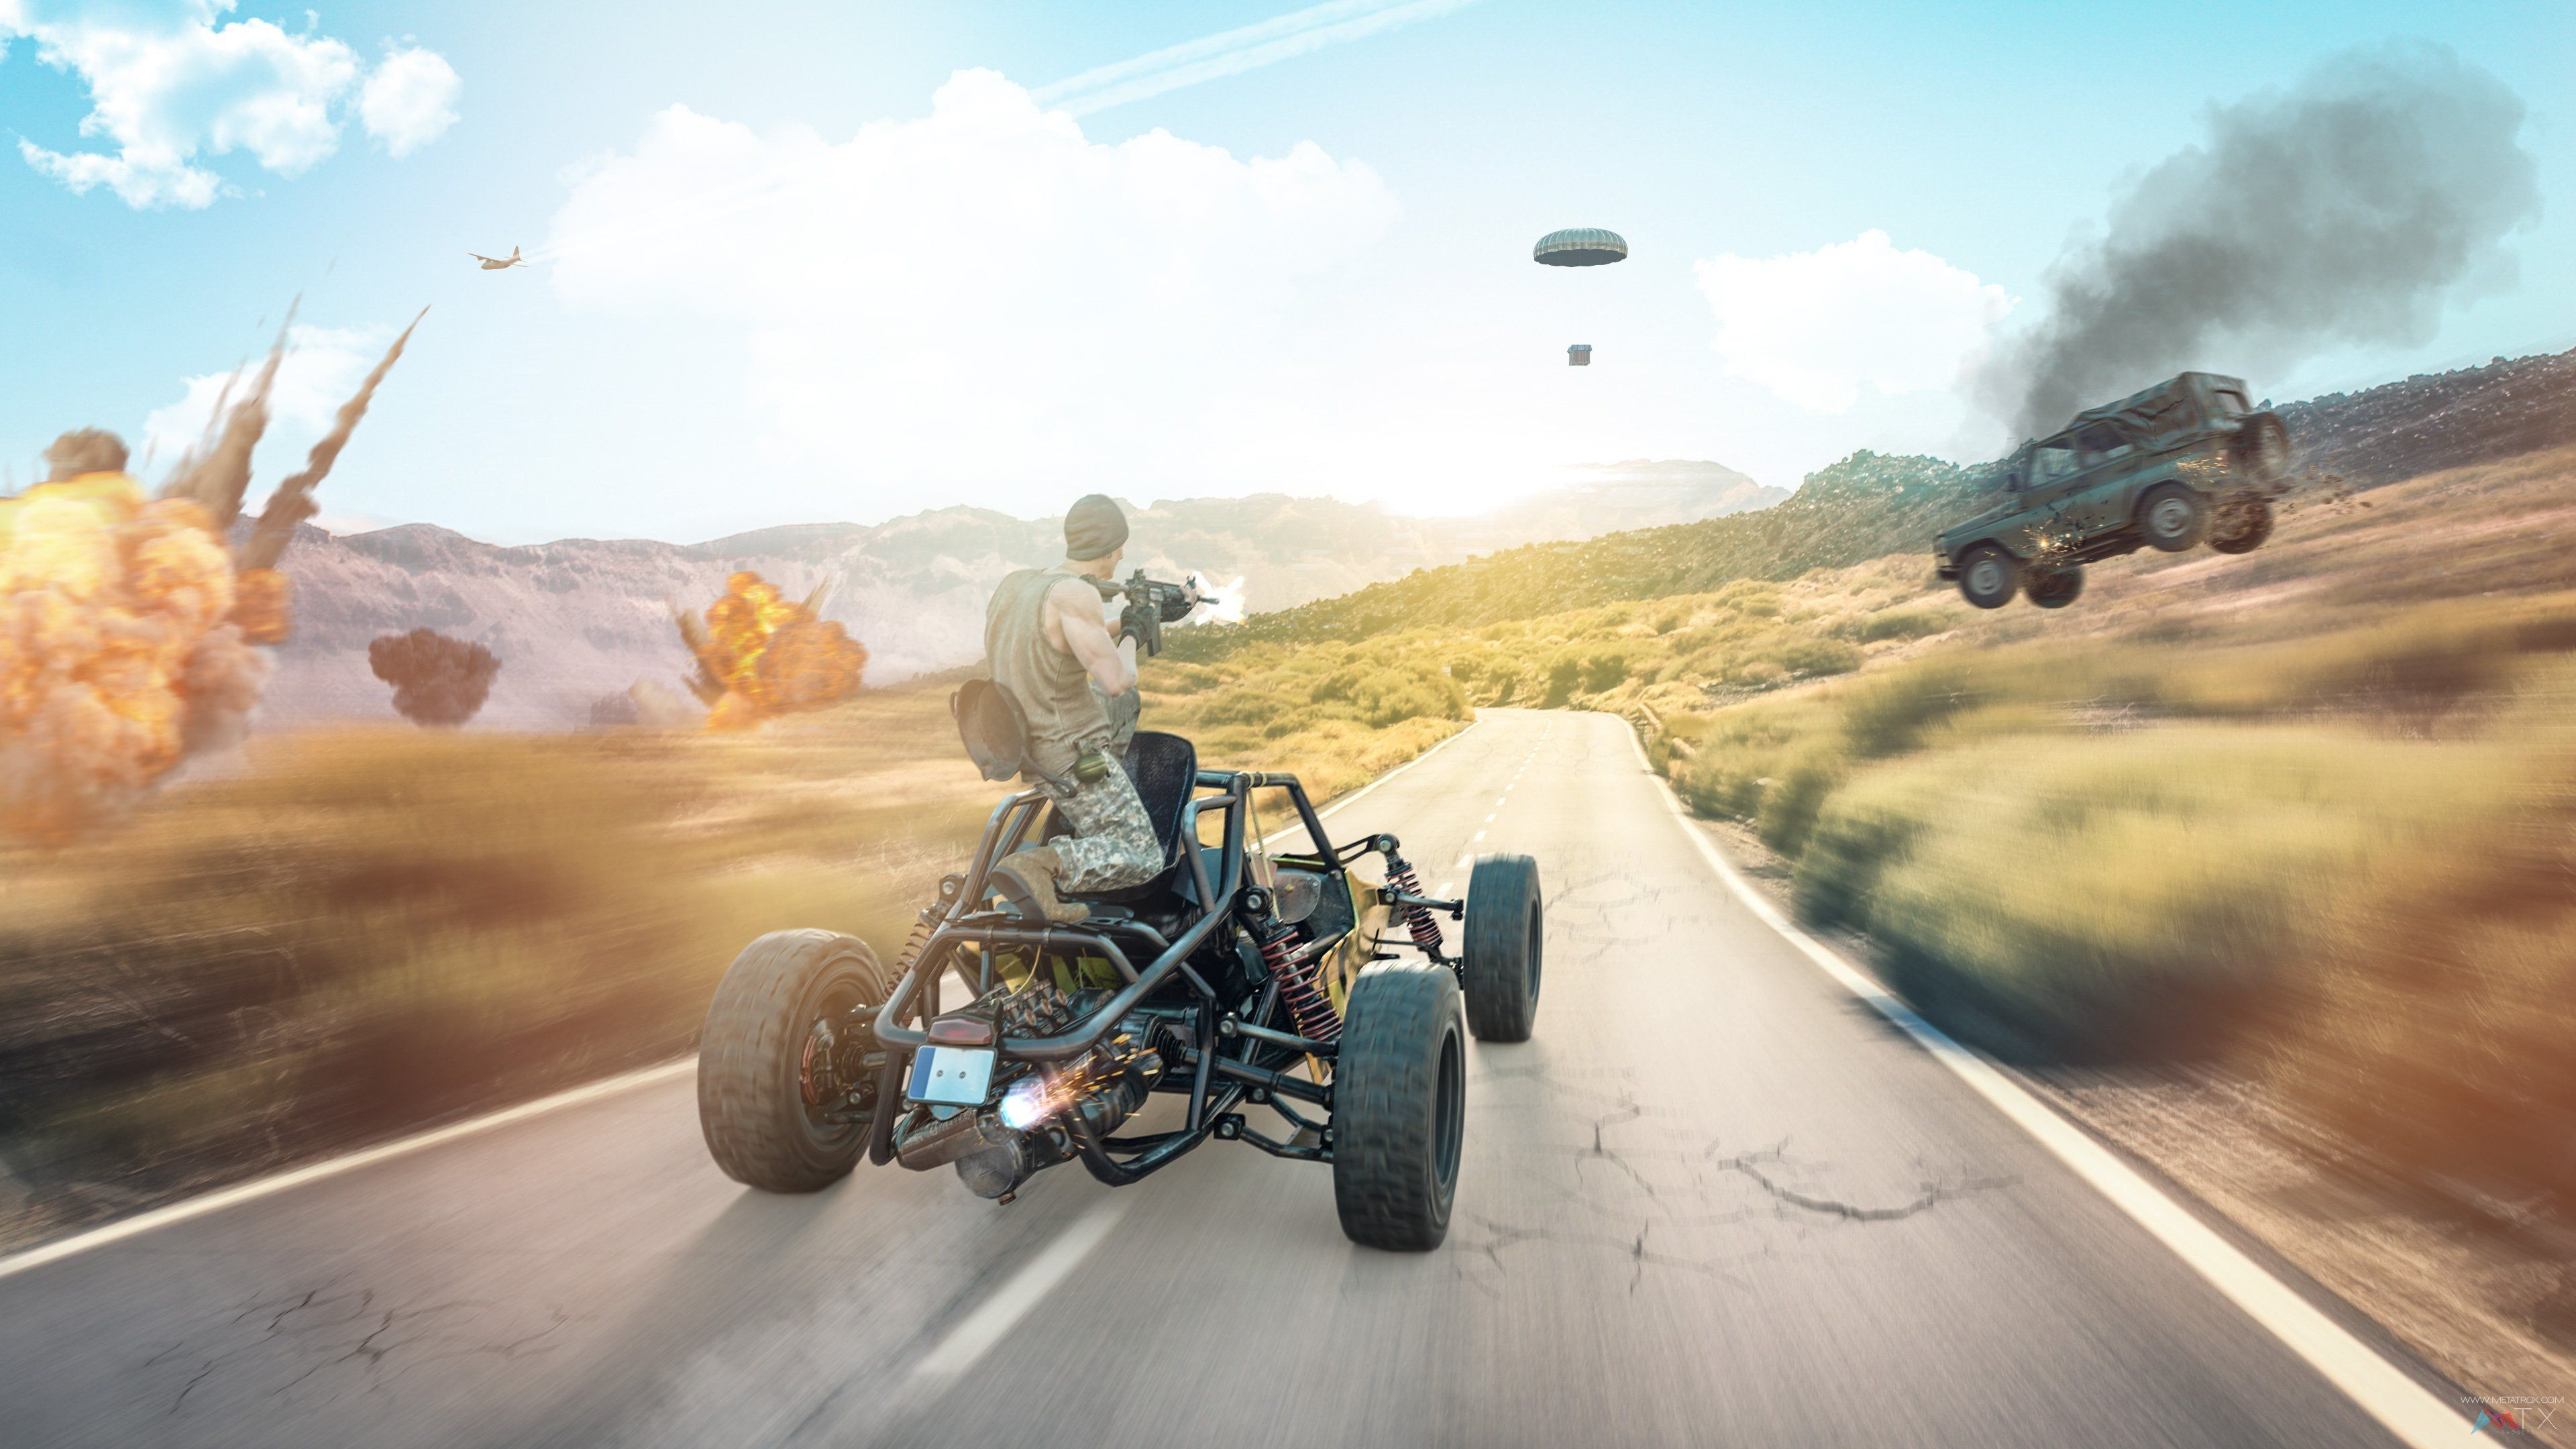 Pubg Player Going For Air Drop With Car Wallpaper Pubg Player Going For Air Drop With Car Wallpaper Game Latest High Defini Car Wallpapers Car Nature Wallpaper